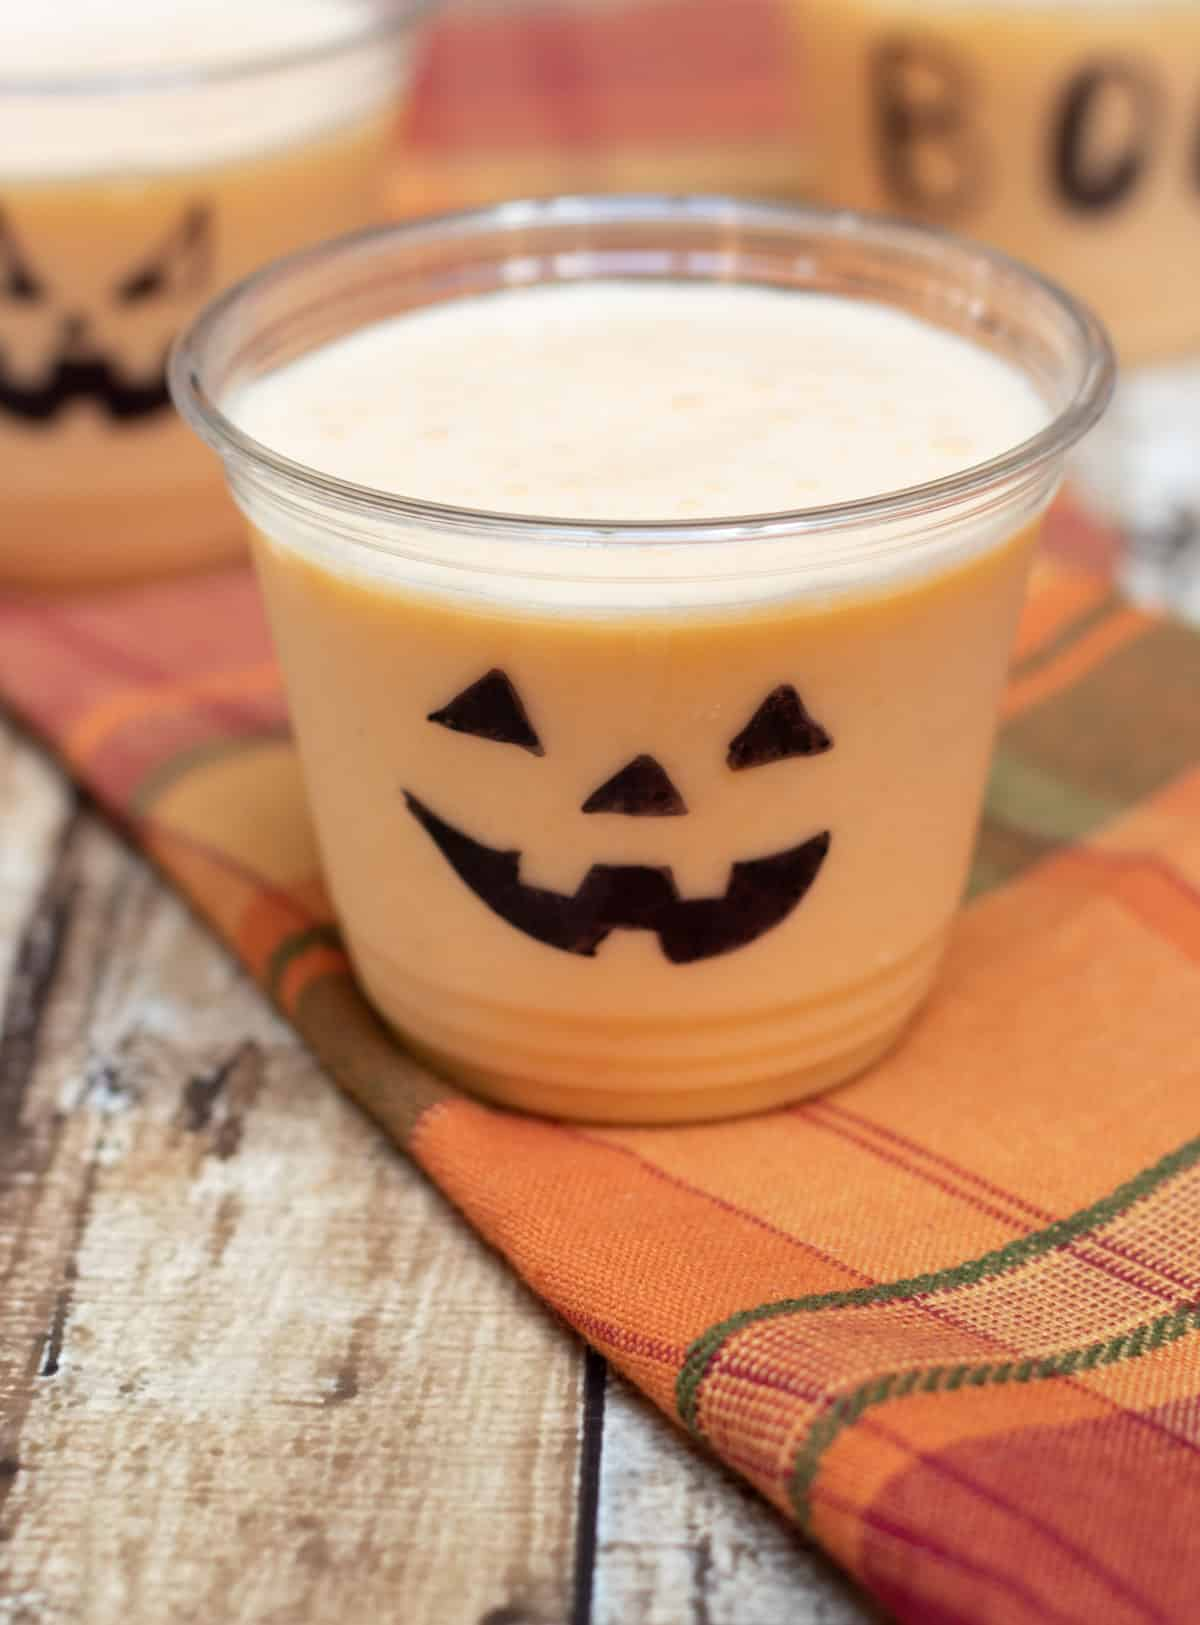 Clear cup decorated with jack-o-lantern face with orange peach smoothie on an orange plaid napkin.